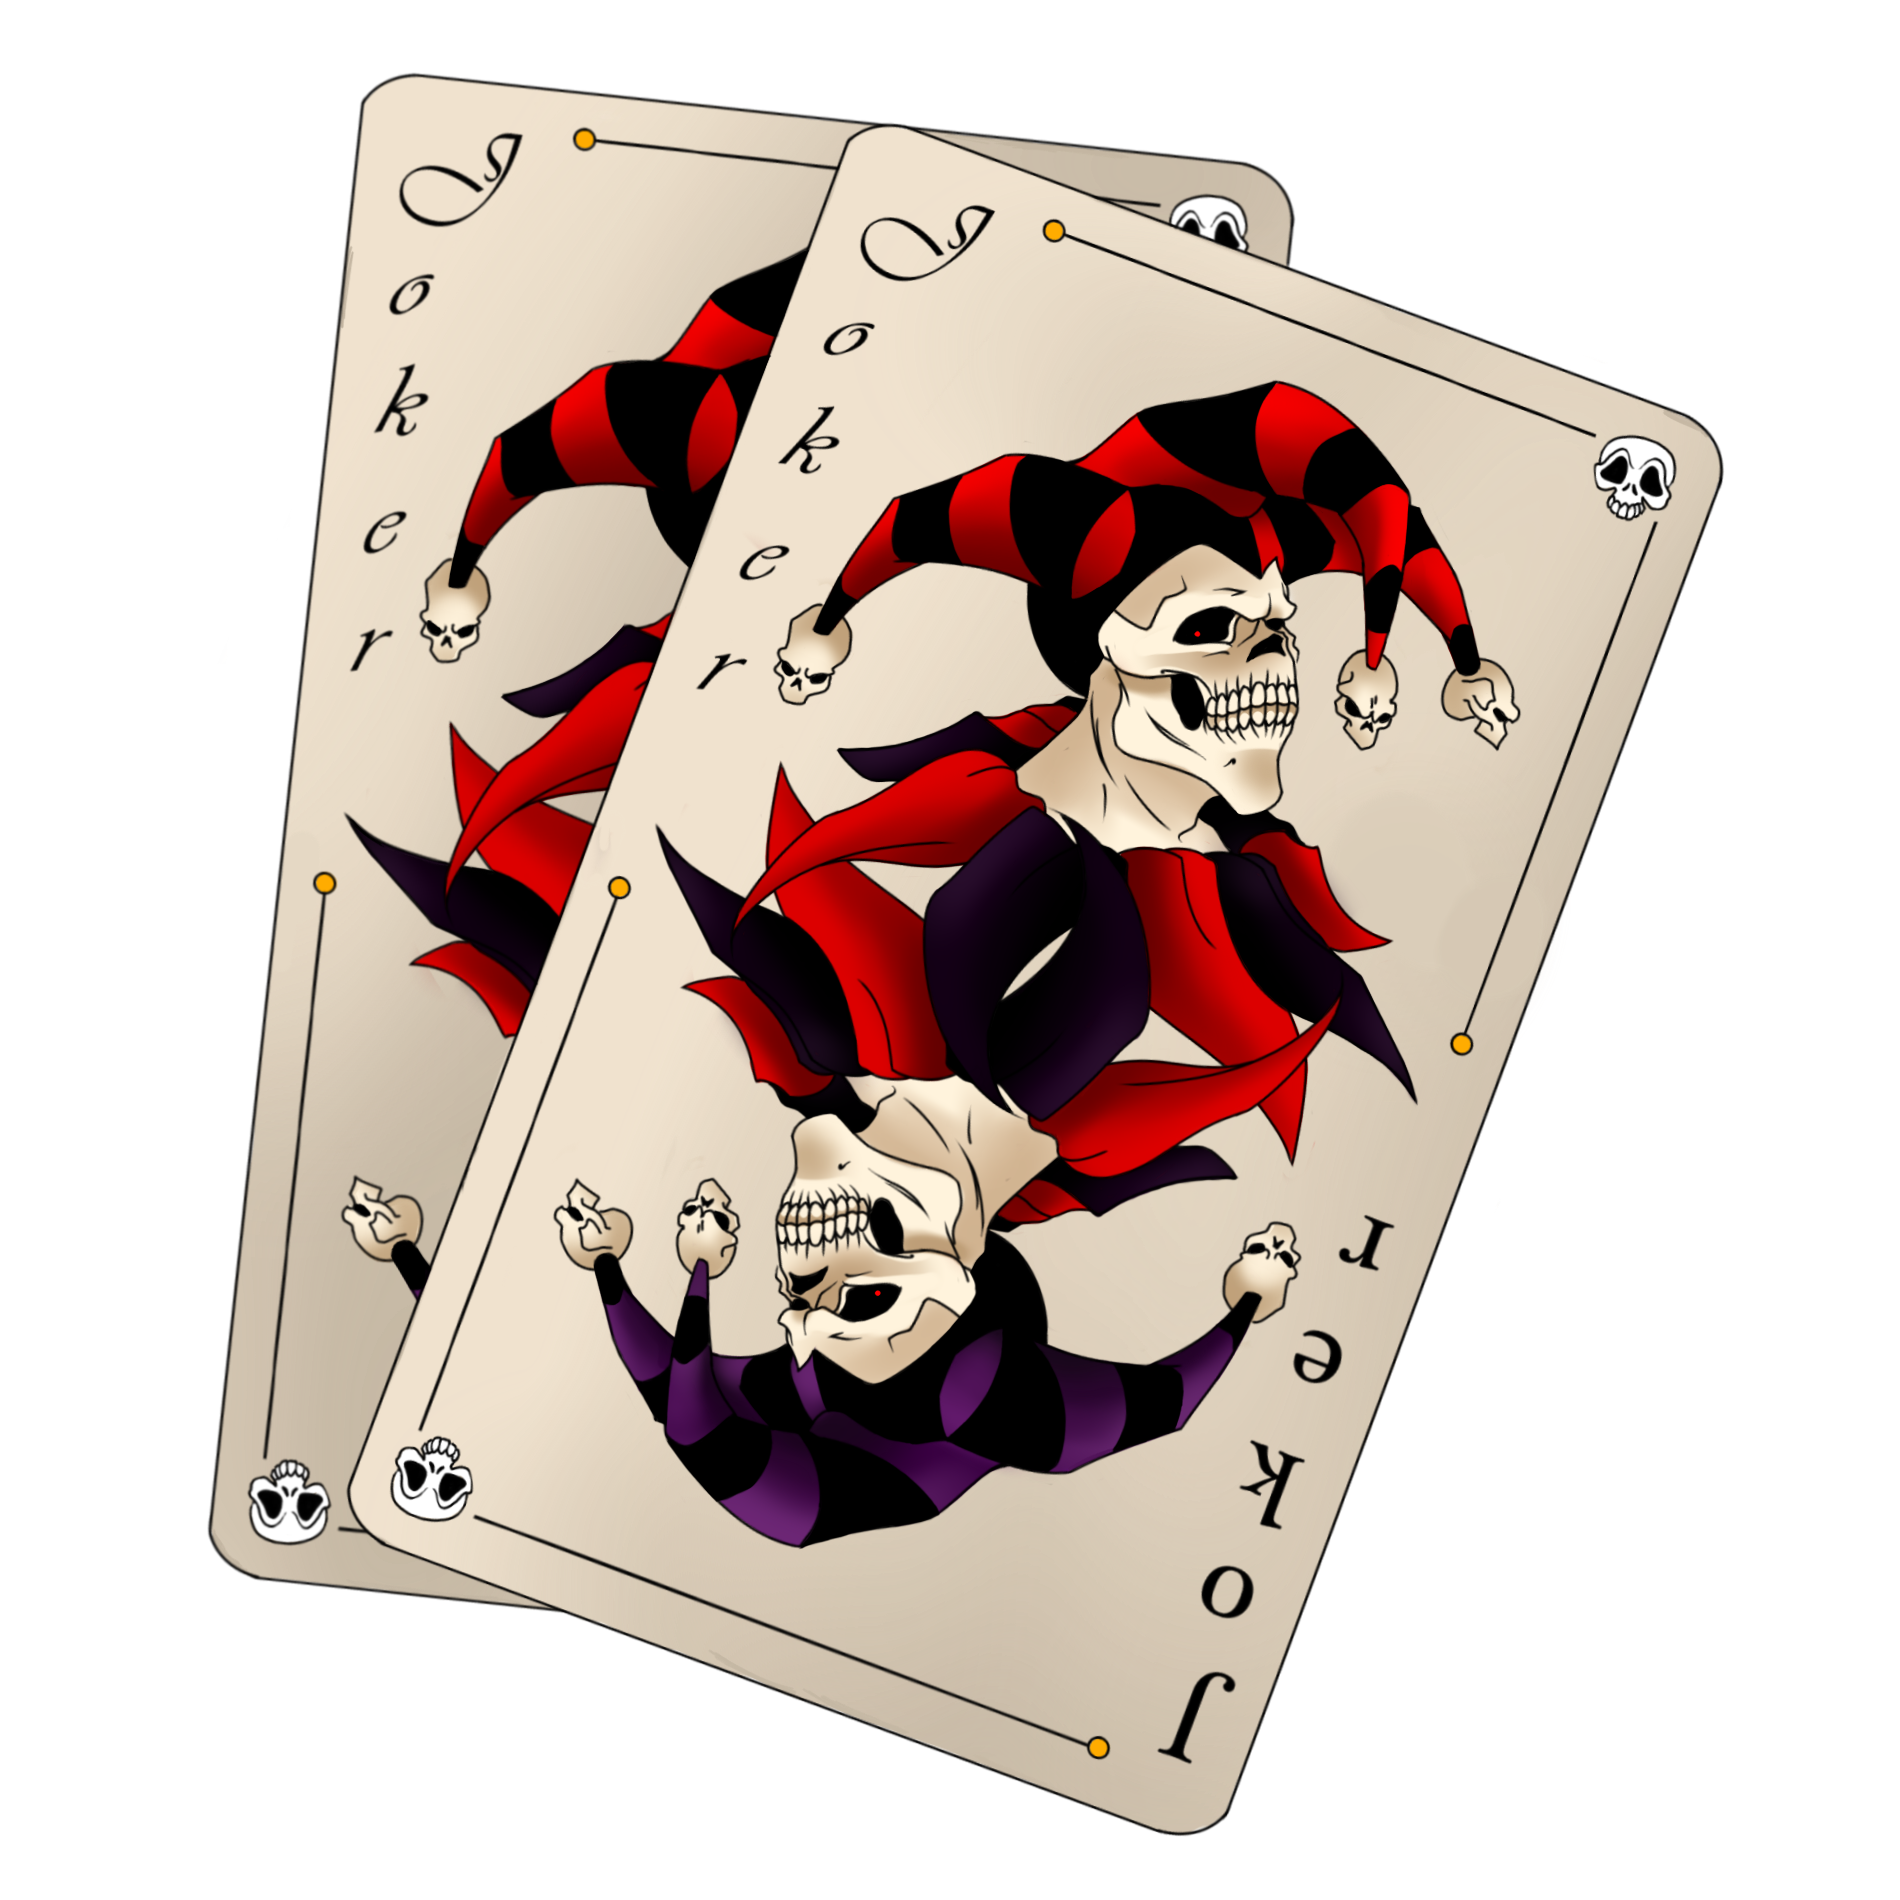 6 Joker Playing Card Designs Images